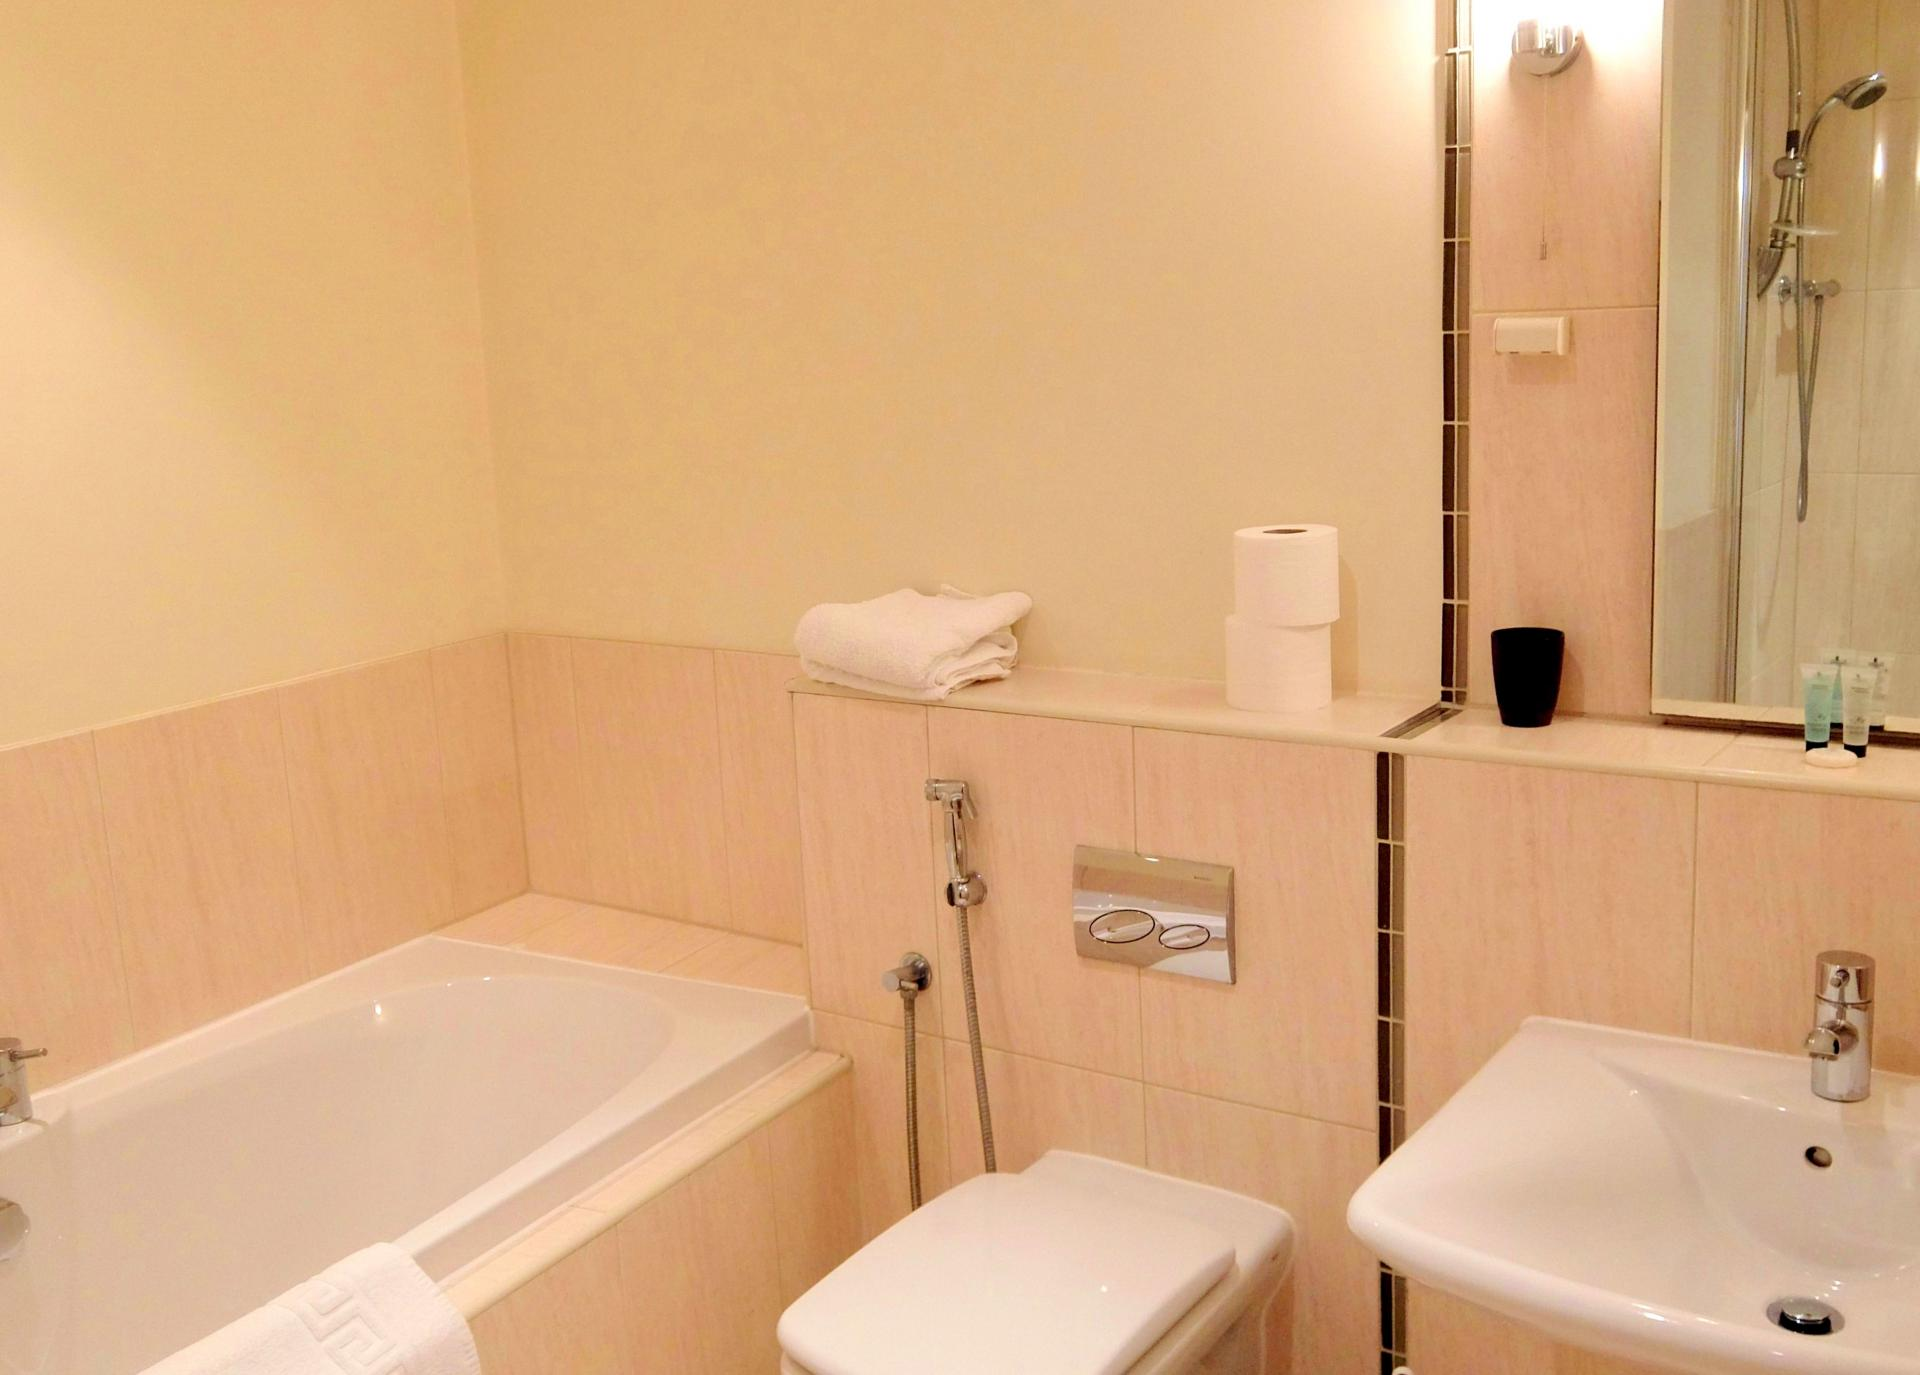 Bathroom at Hampton Court Serviced Apartments, Hampton Court, London - Citybase Apartments